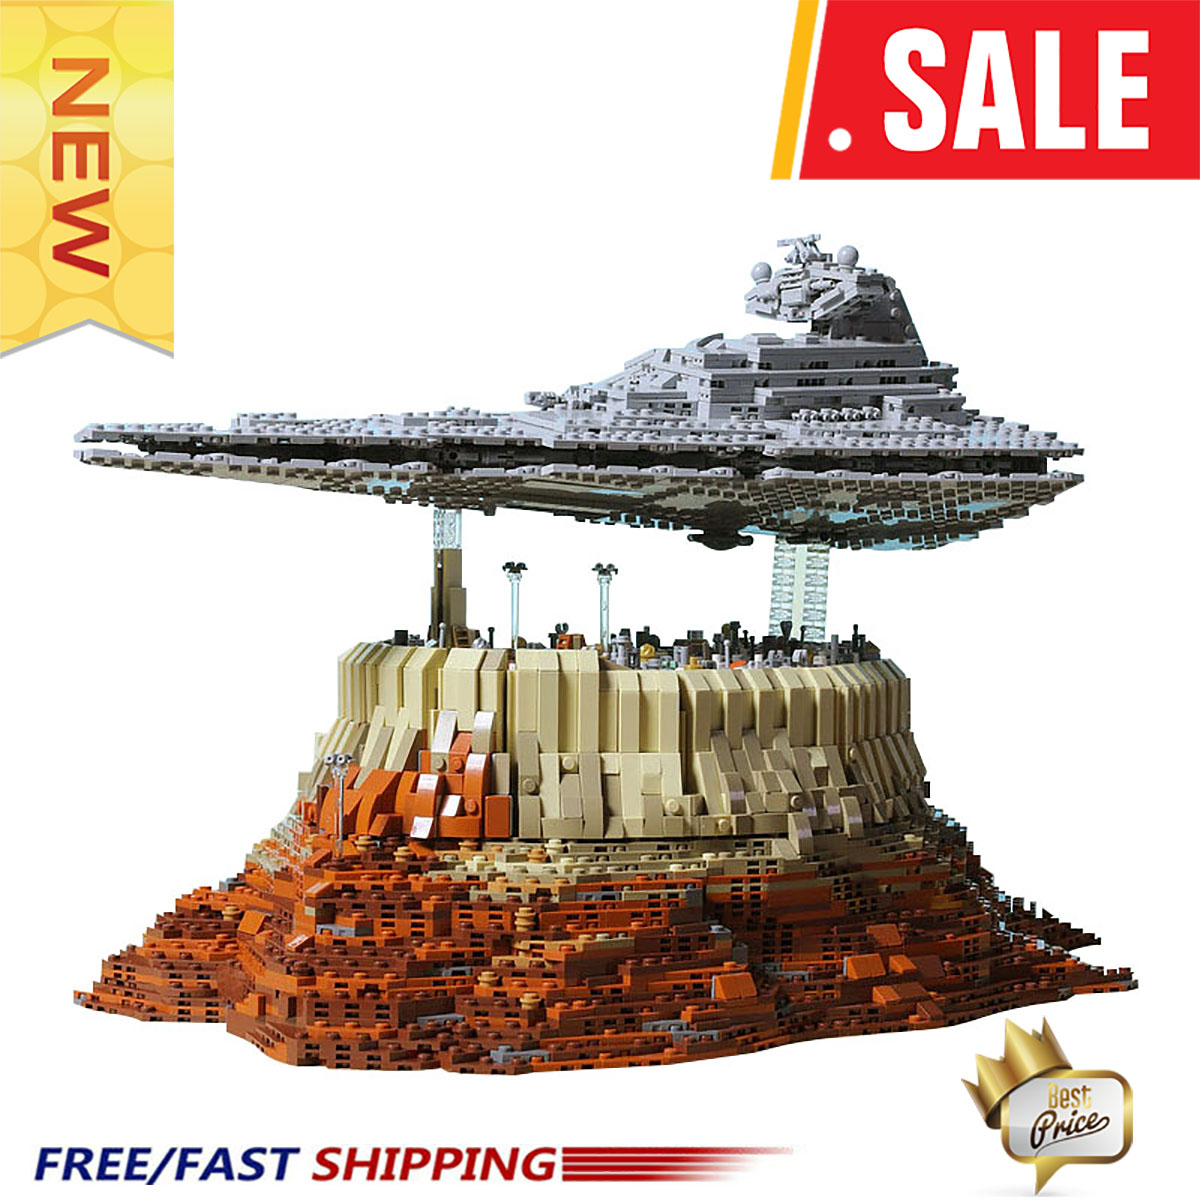 New Ship Wars MOC-18916 The Empire Over Jedha City By Onecase Star Cruise Blocks